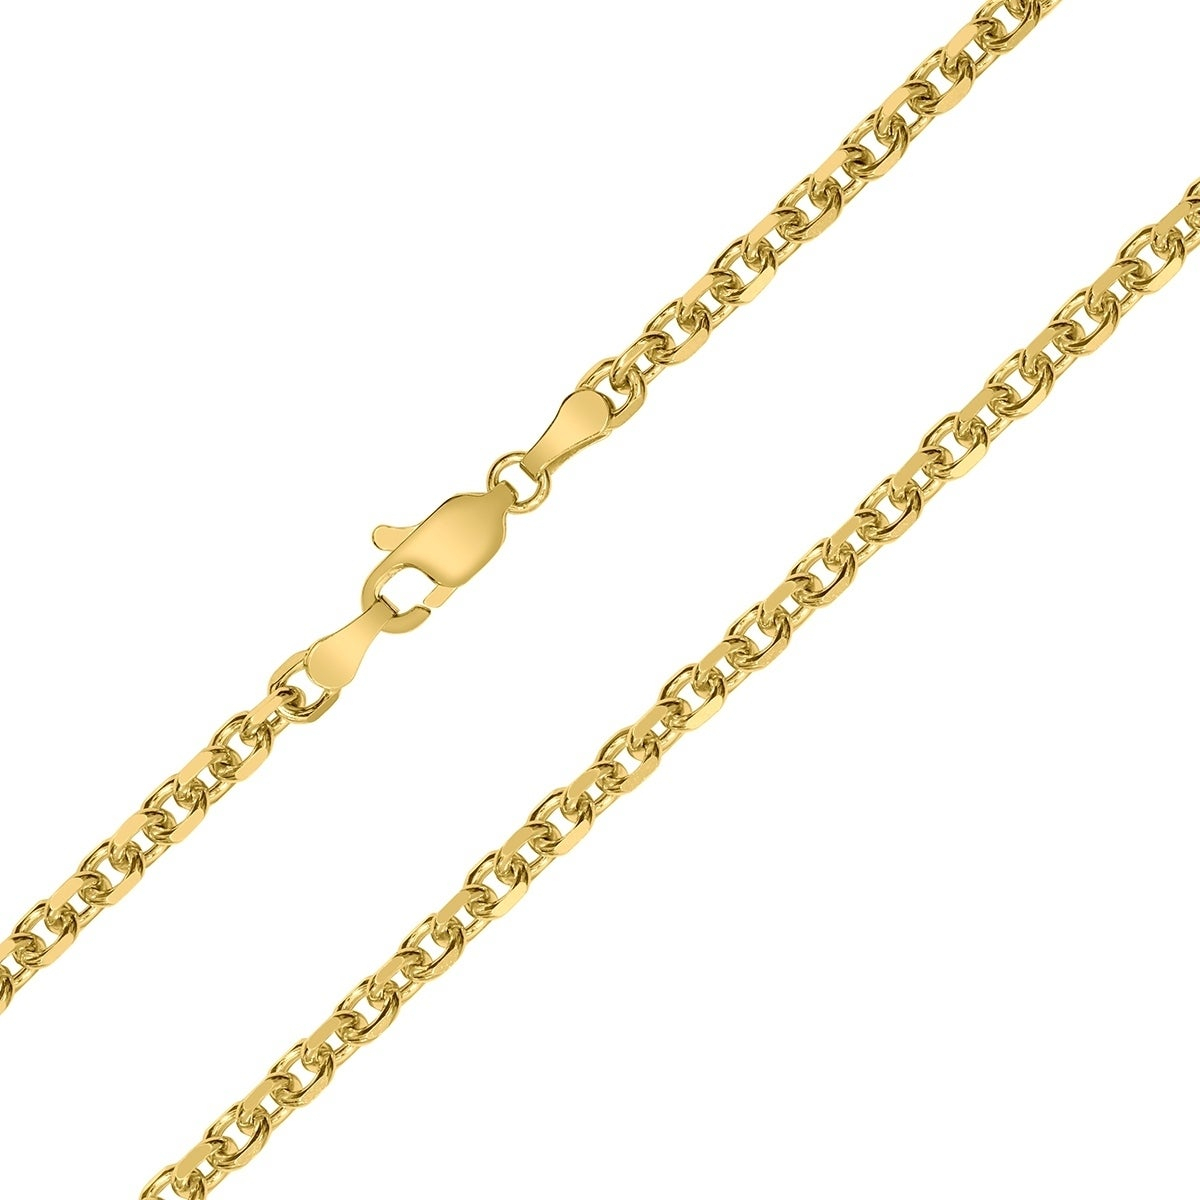 14K Yellow Gold 4Mm Diamond Cut Classic Oval Cable Chain With Lobster Clasp – 20 Inch Within 2020 Classic Cable Chain Necklaces (View 24 of 25)